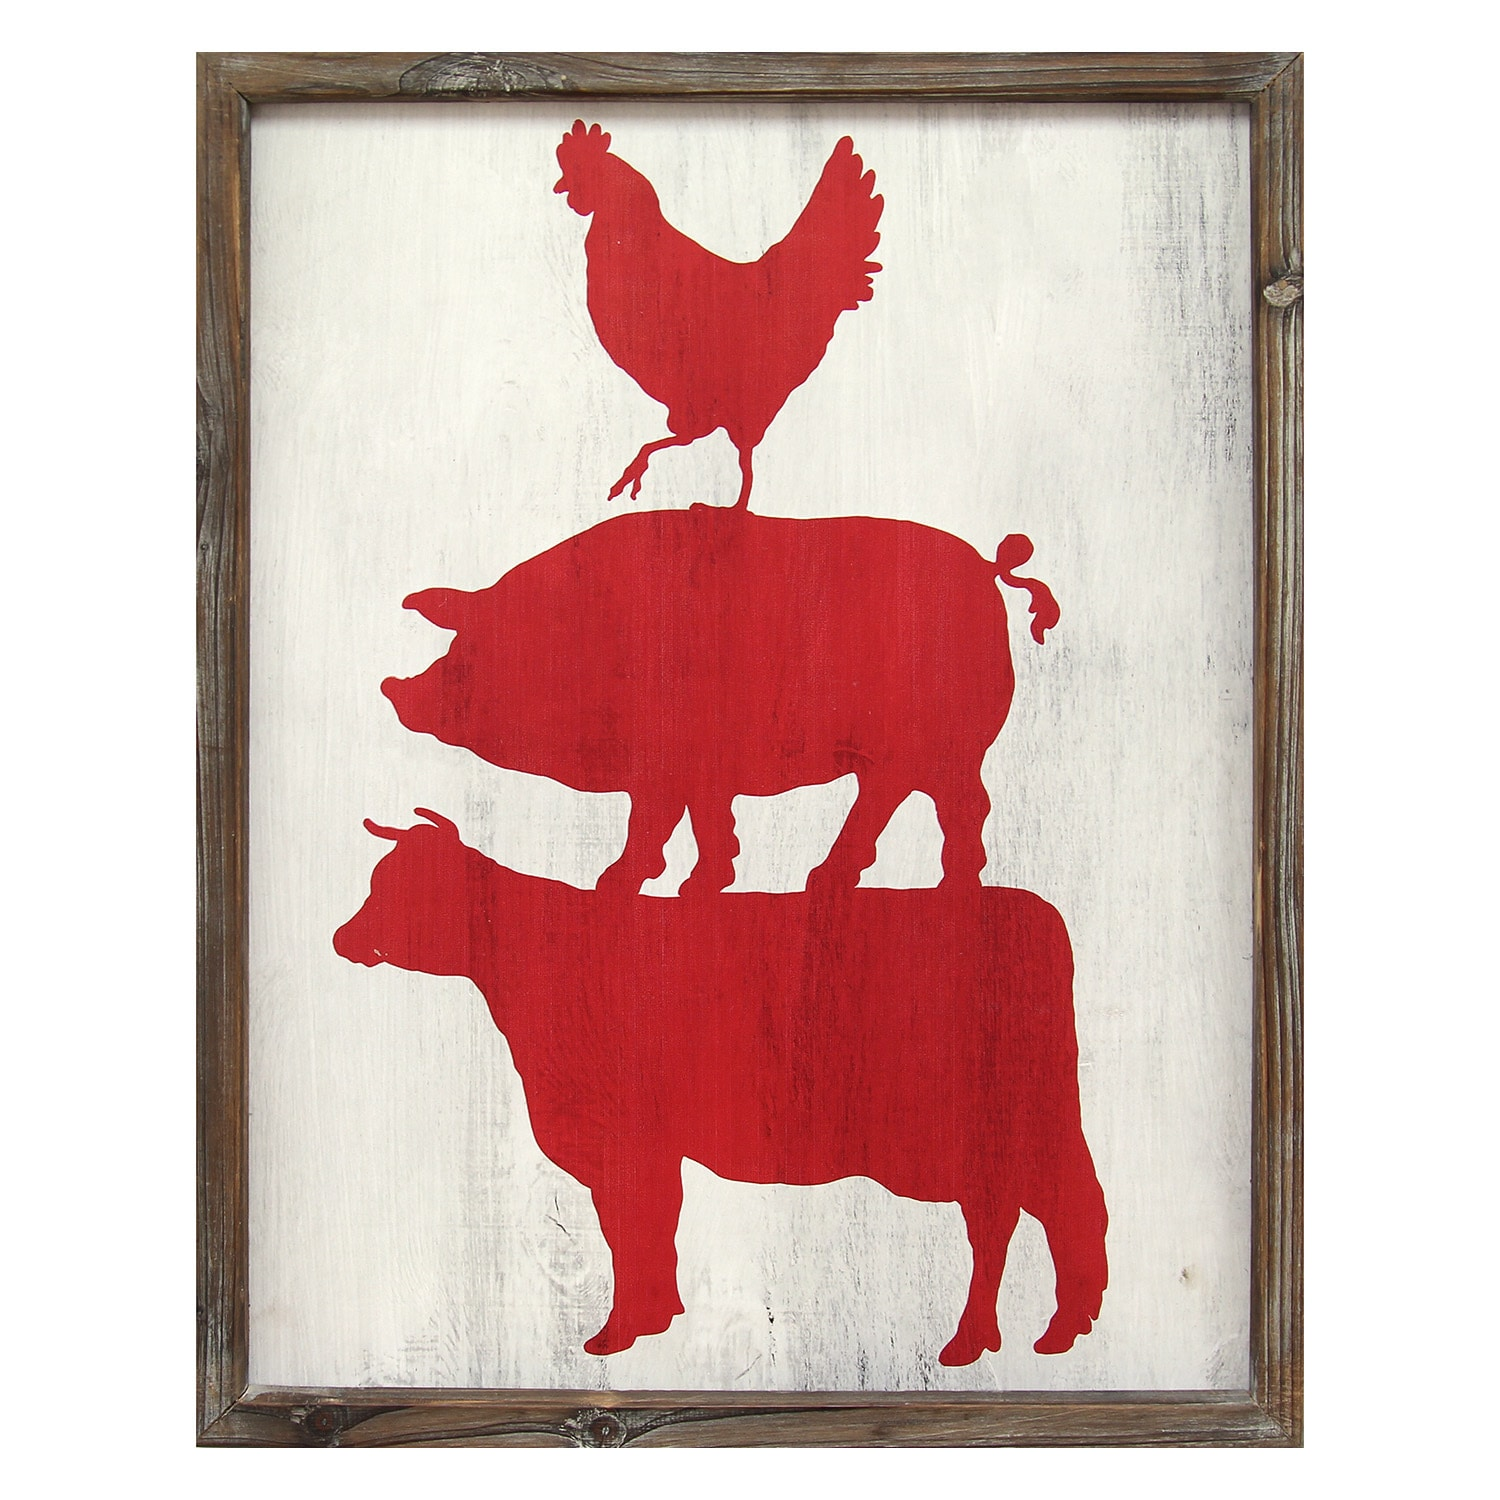 Stratton Home Decor Cow, Pig, and Rooster Wall Art (16.00...